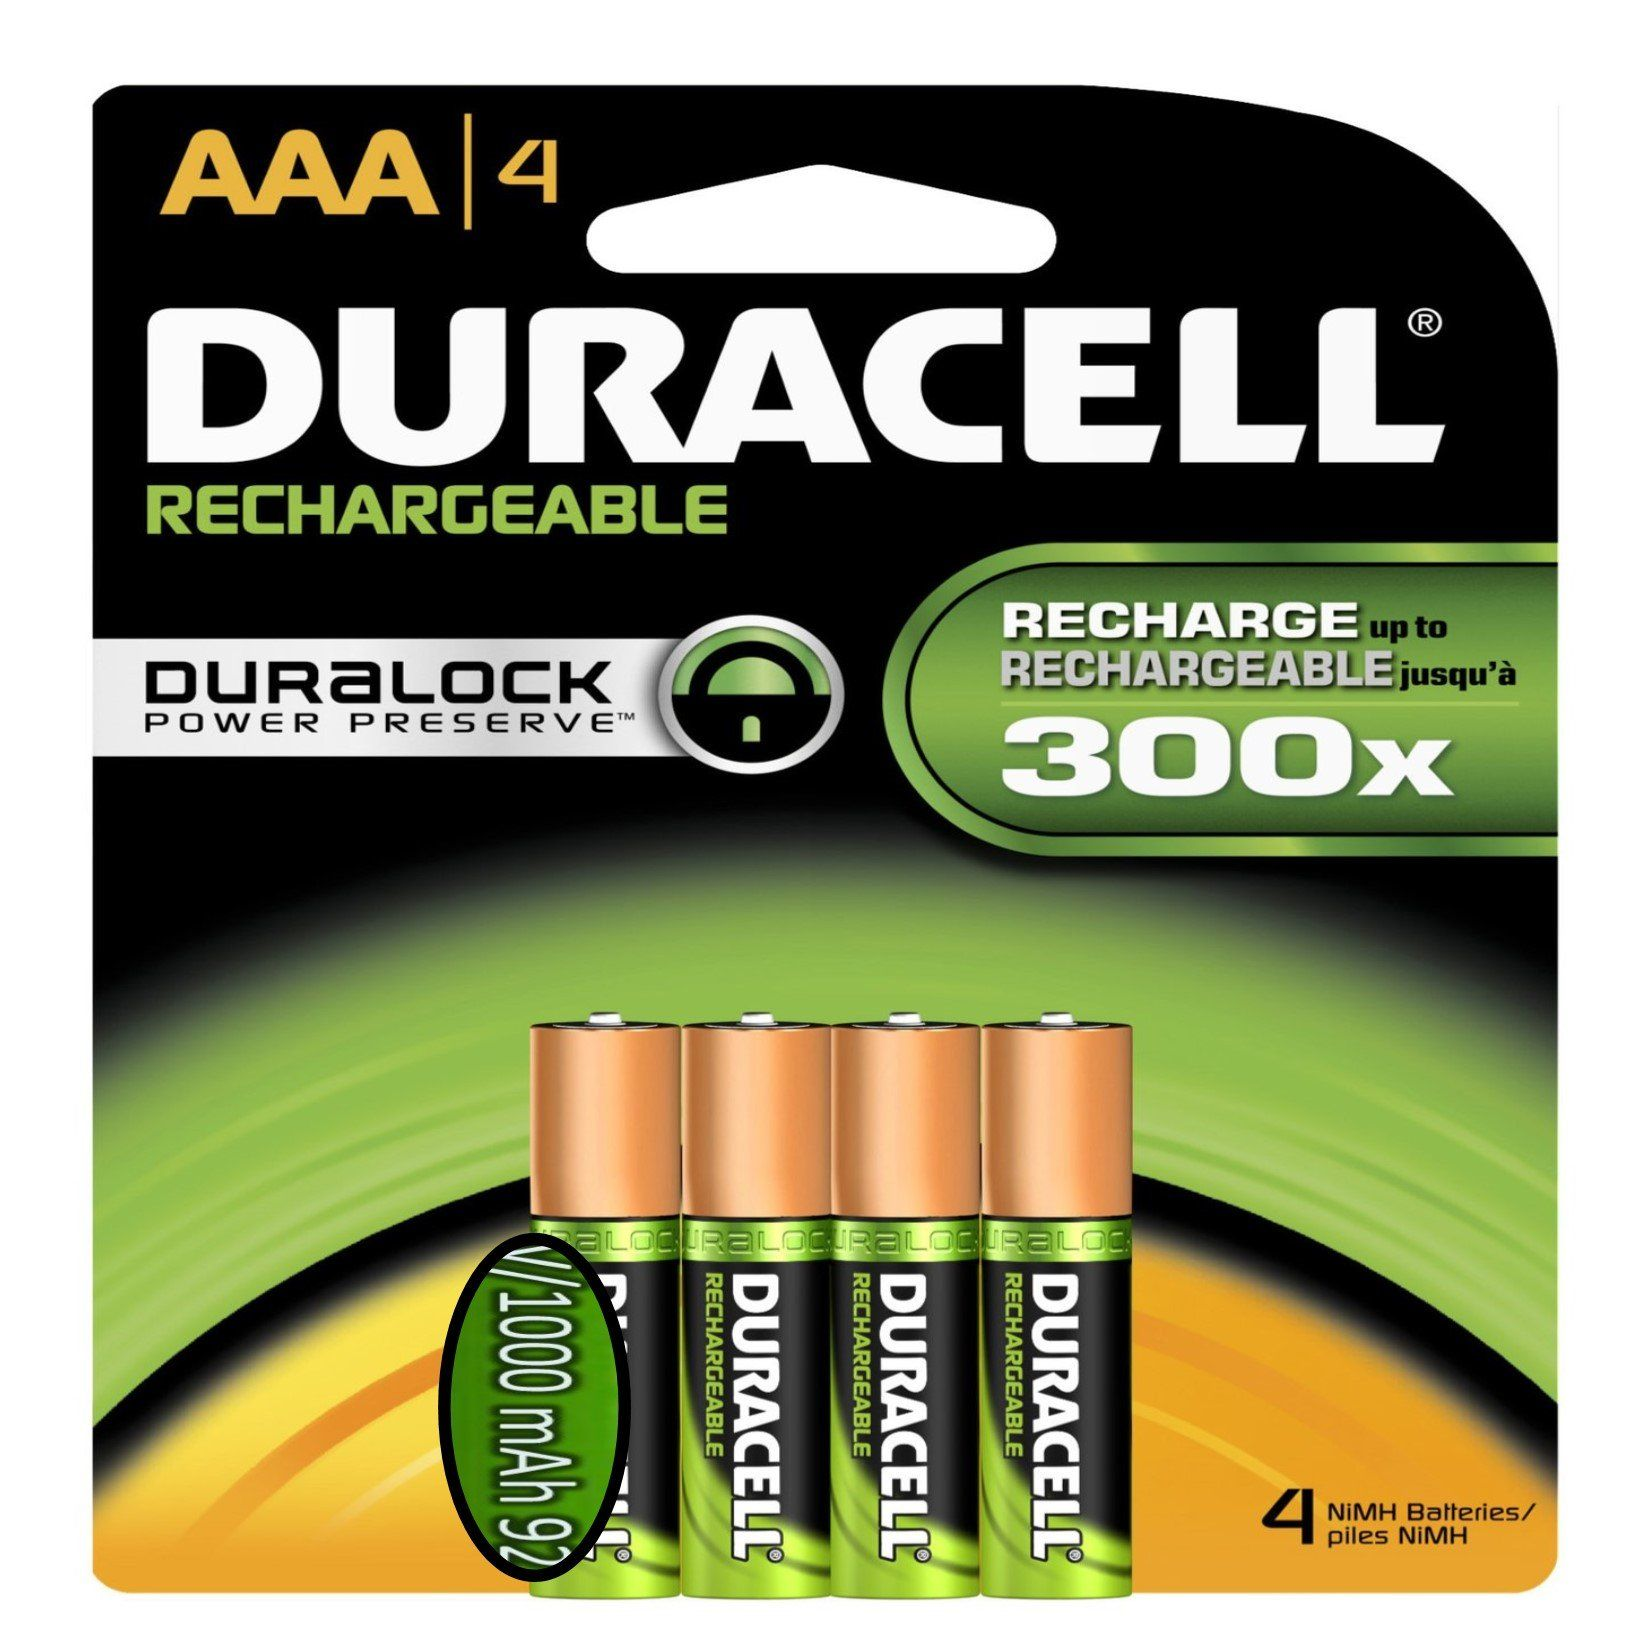 Duracell Aaa Rechargeable Batteries 4 Pack 1000 Mah Rechargeable Batteries Duracell Recharge